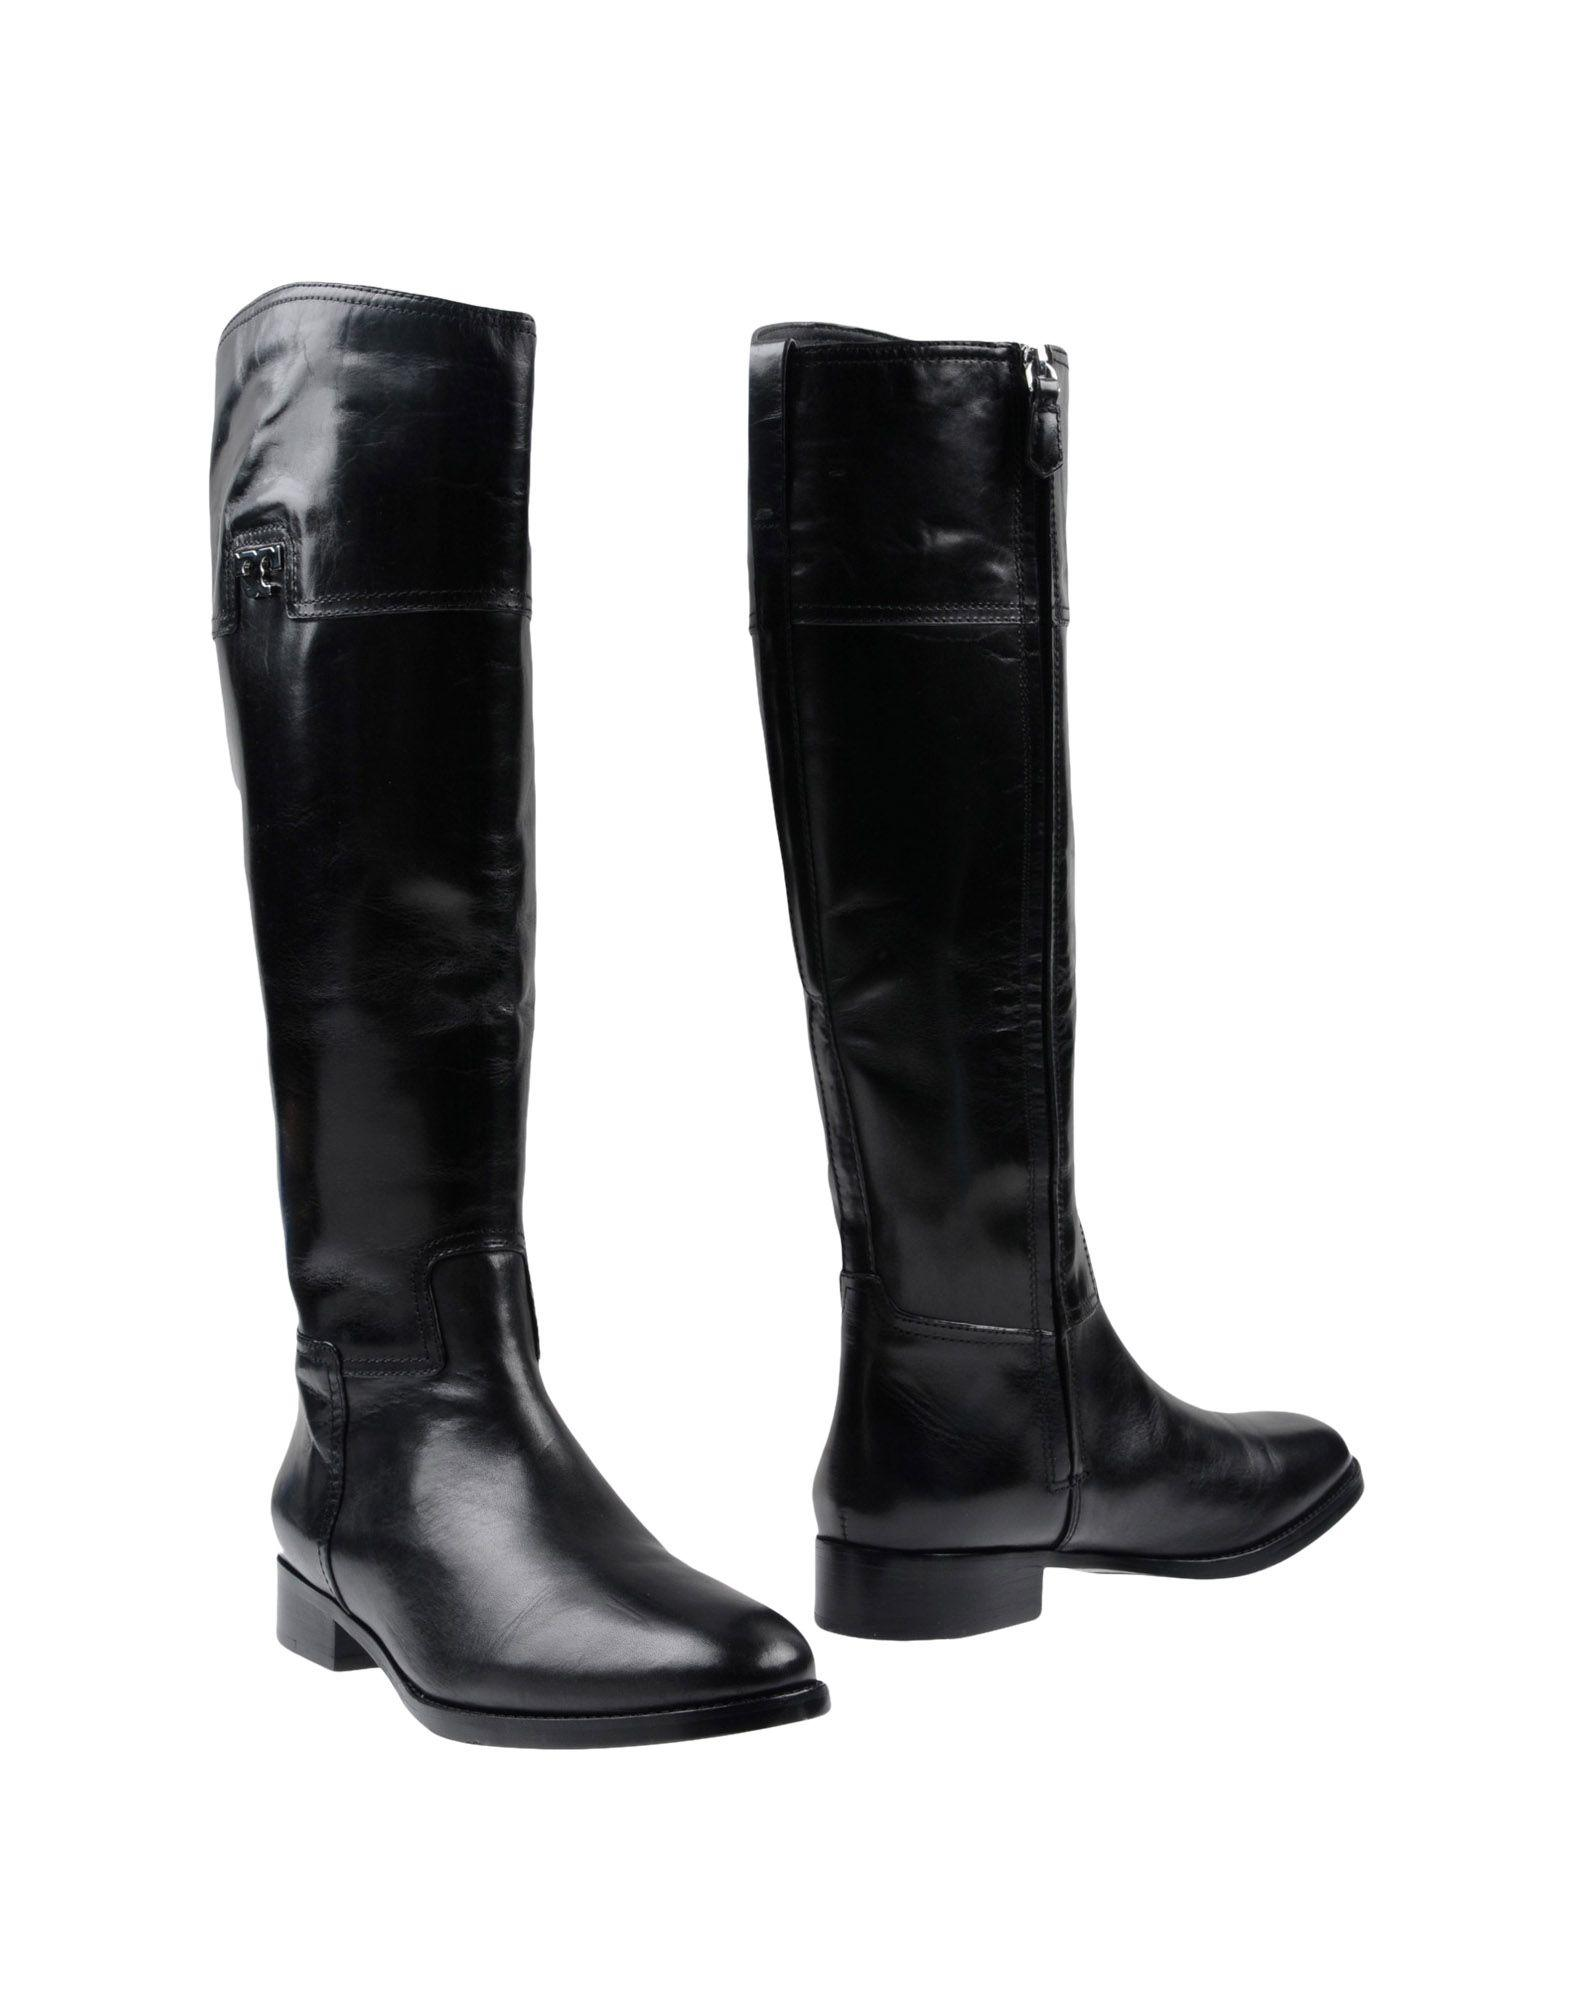 Tory Burch Boots In Black